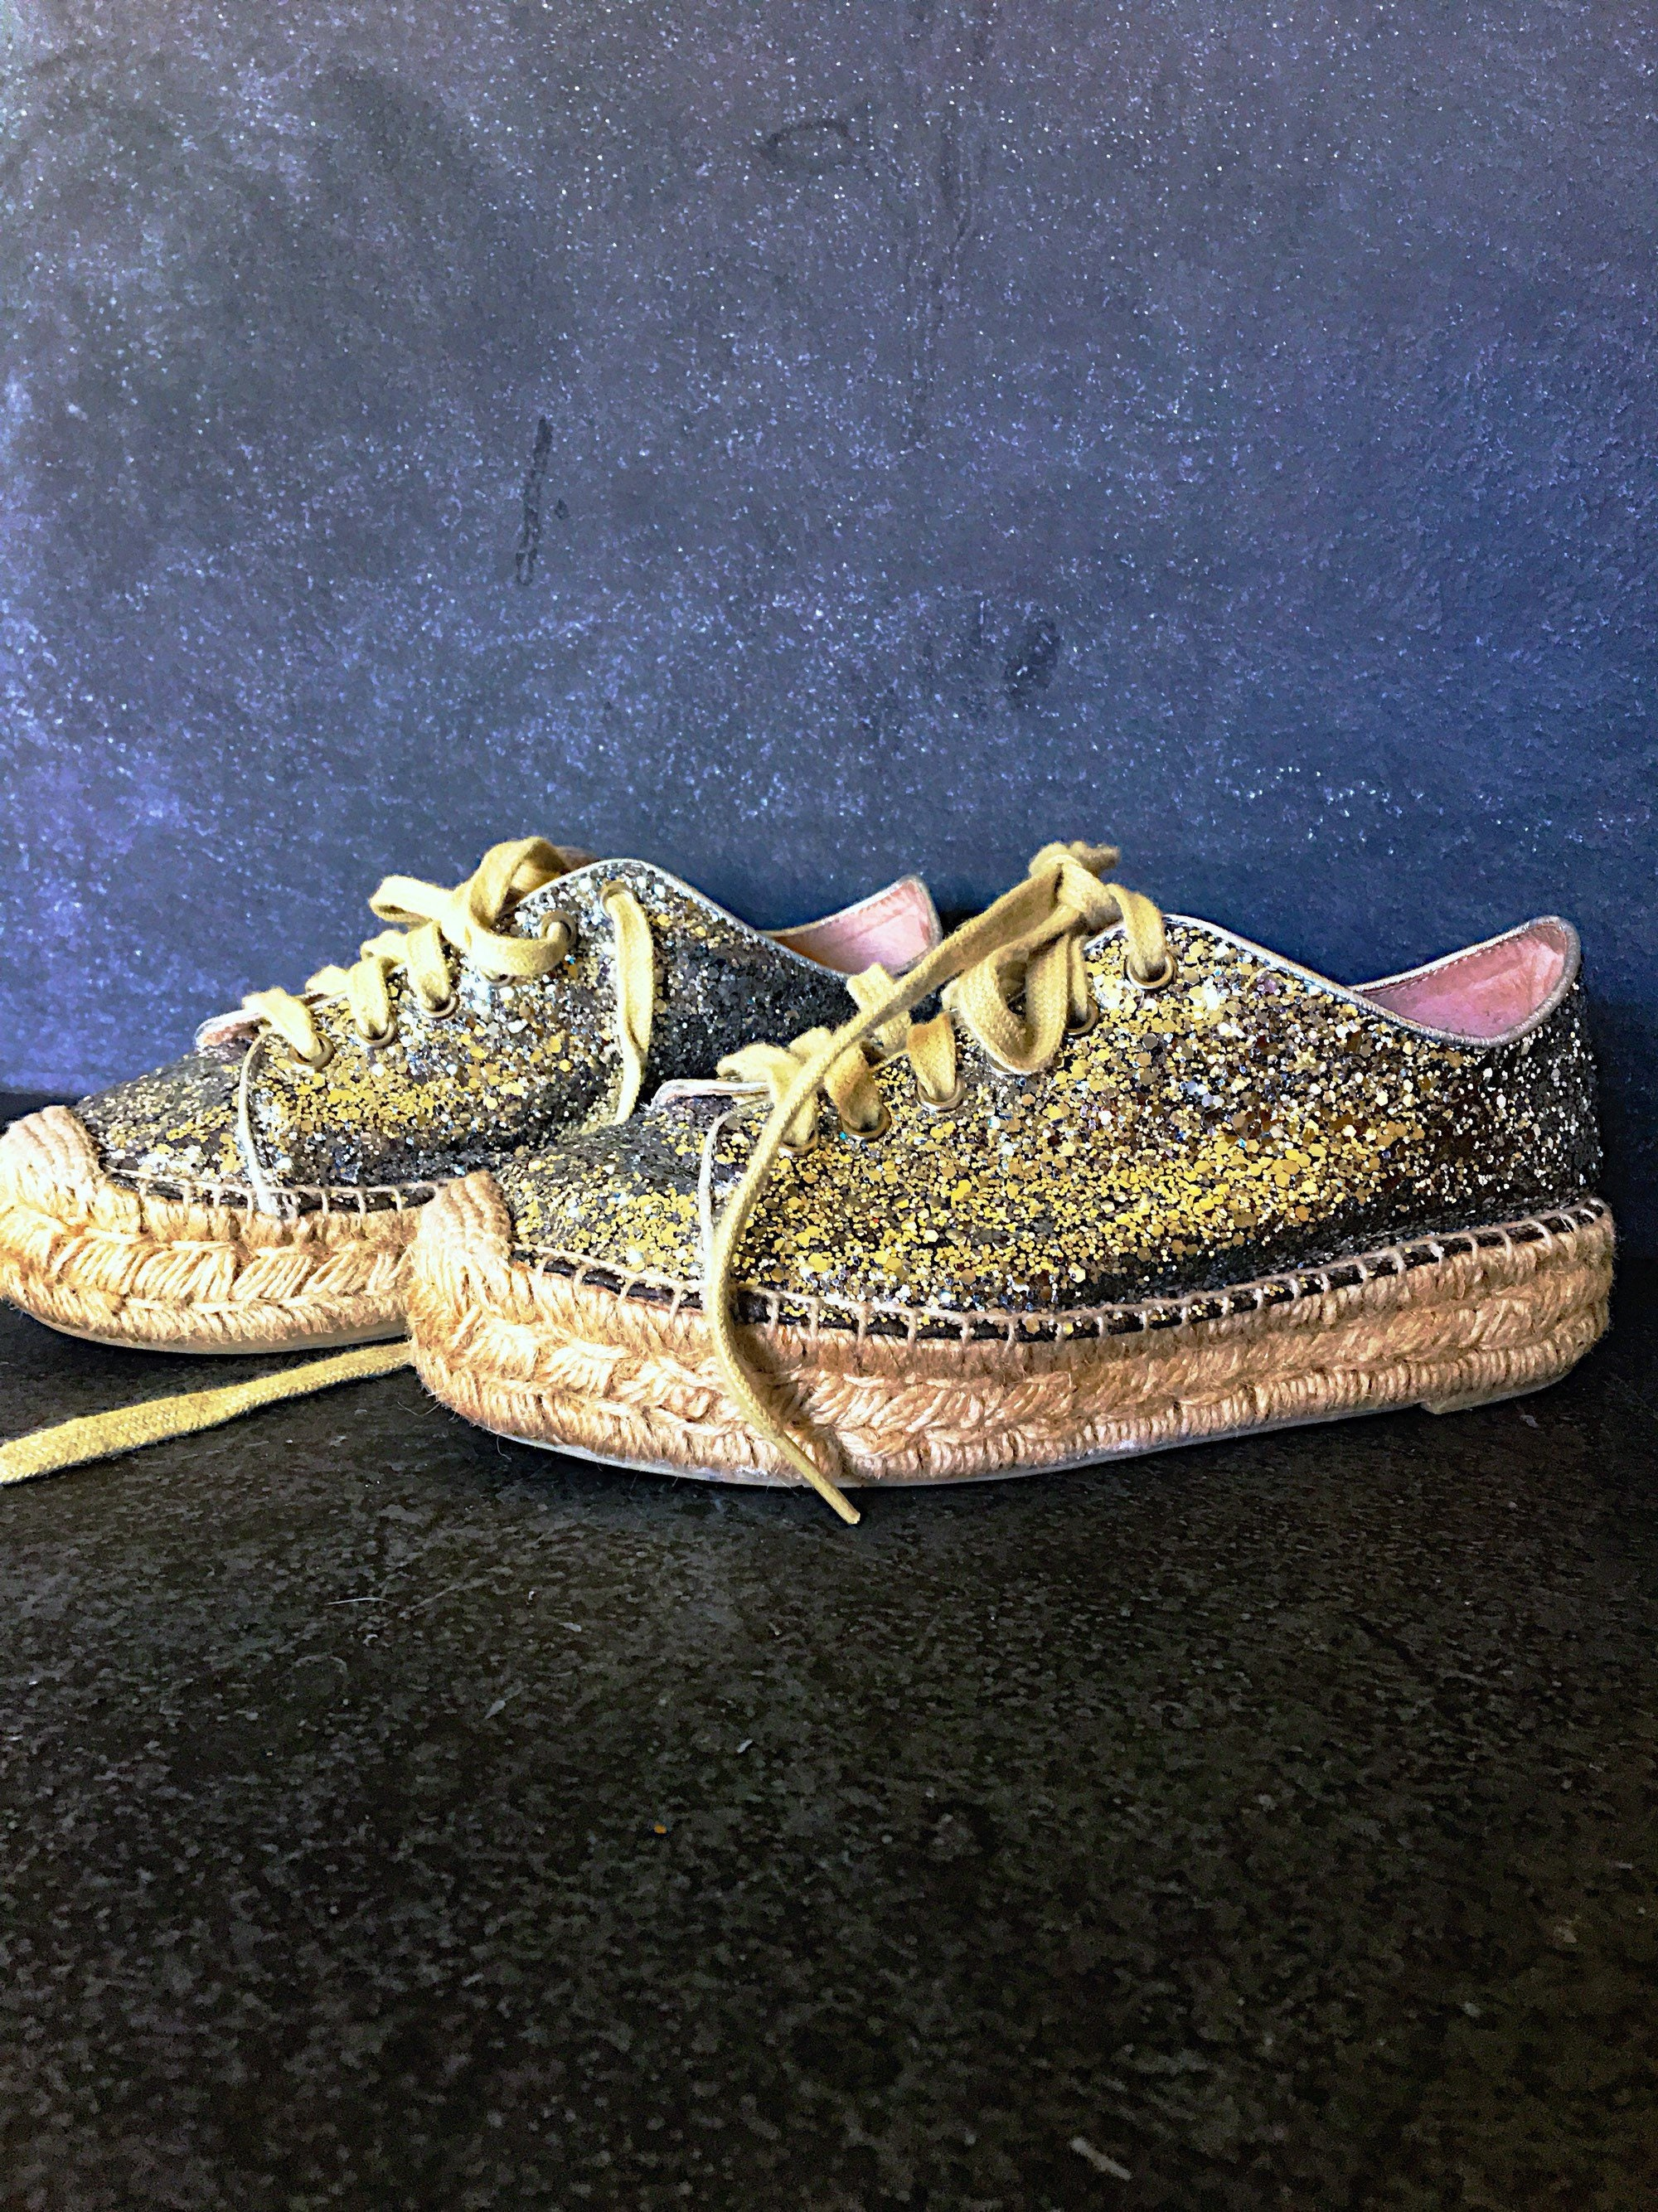 80s Dresses | Casual to Party Dresses Vintage Espadrille Sneakers, 1980s Club Shoes, Silver Sequin Designer Paloma Barcelo, Made in Spain $0.00 AT vintagedancer.com